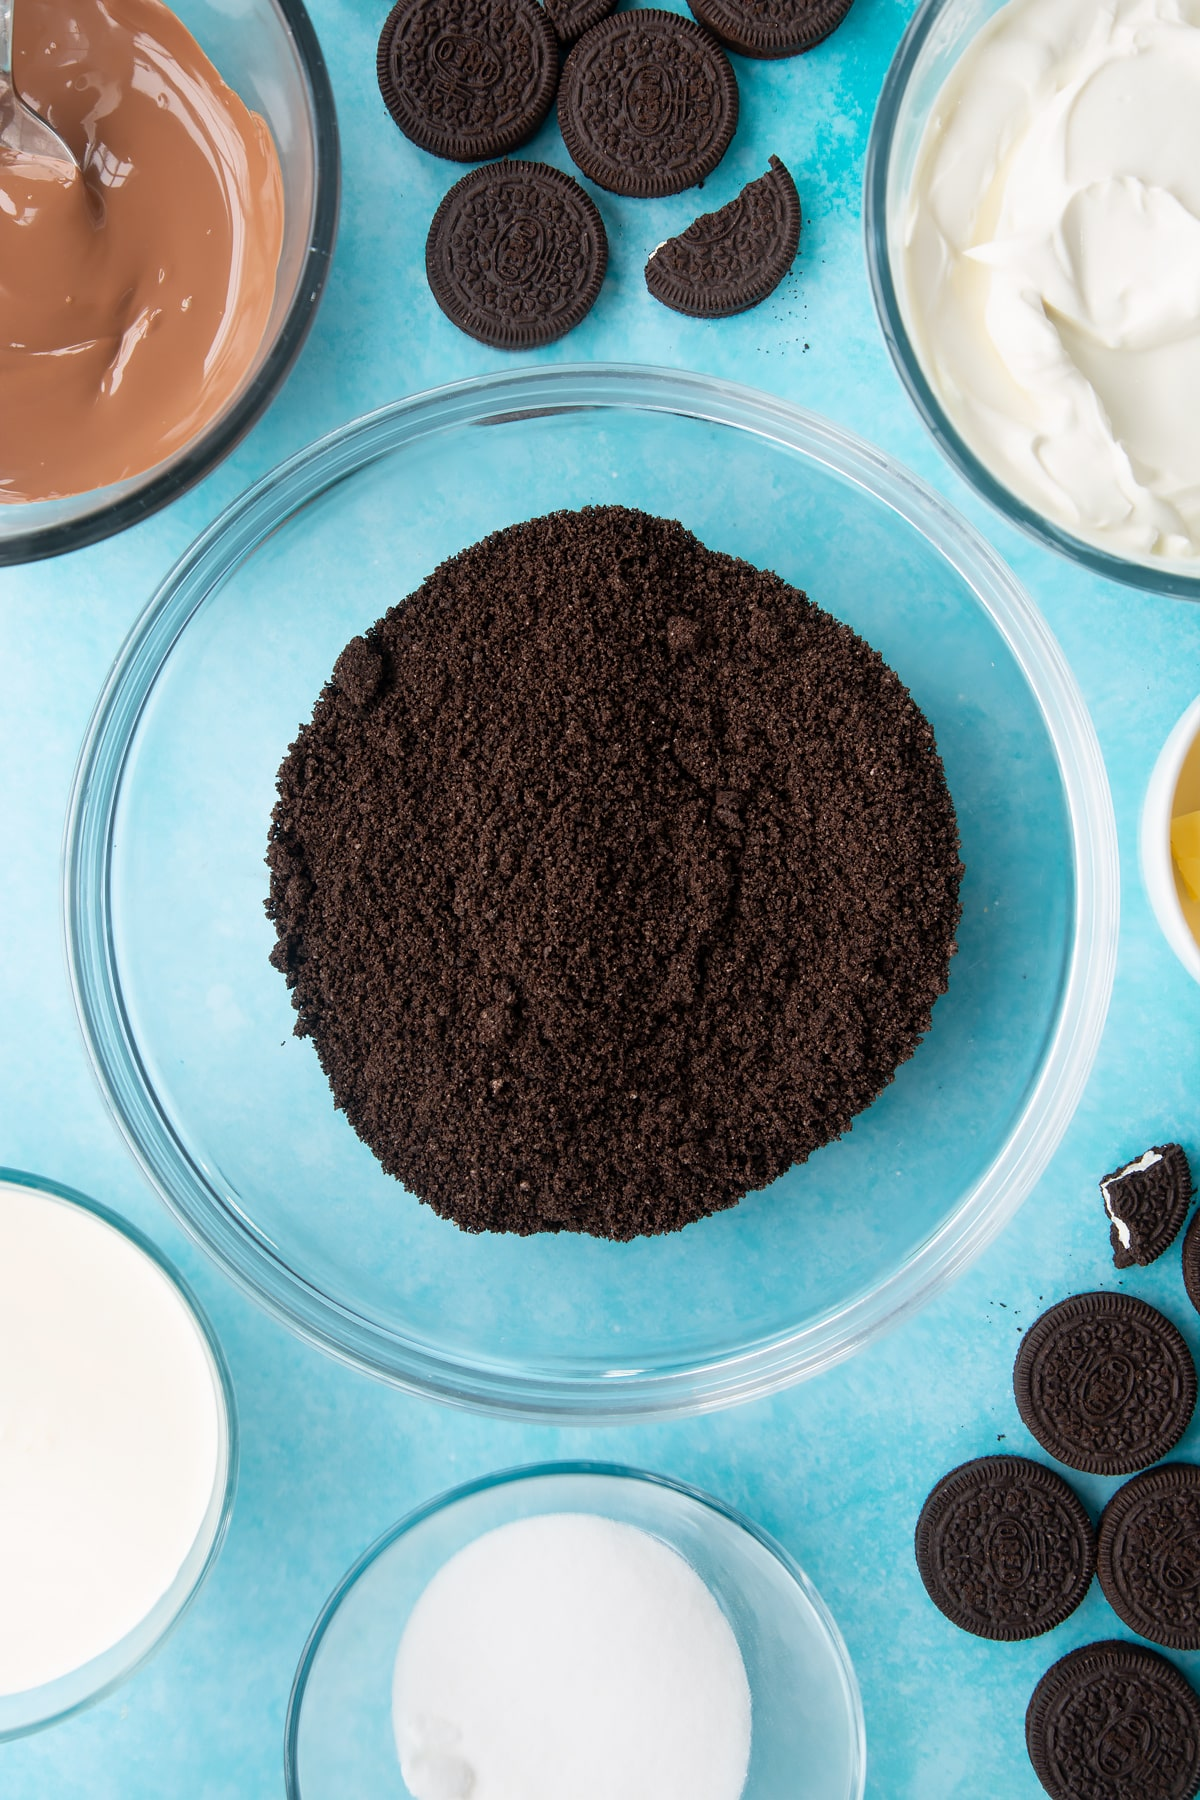 Overhead shot of oreo biscuits crumbed in a large clear bowl